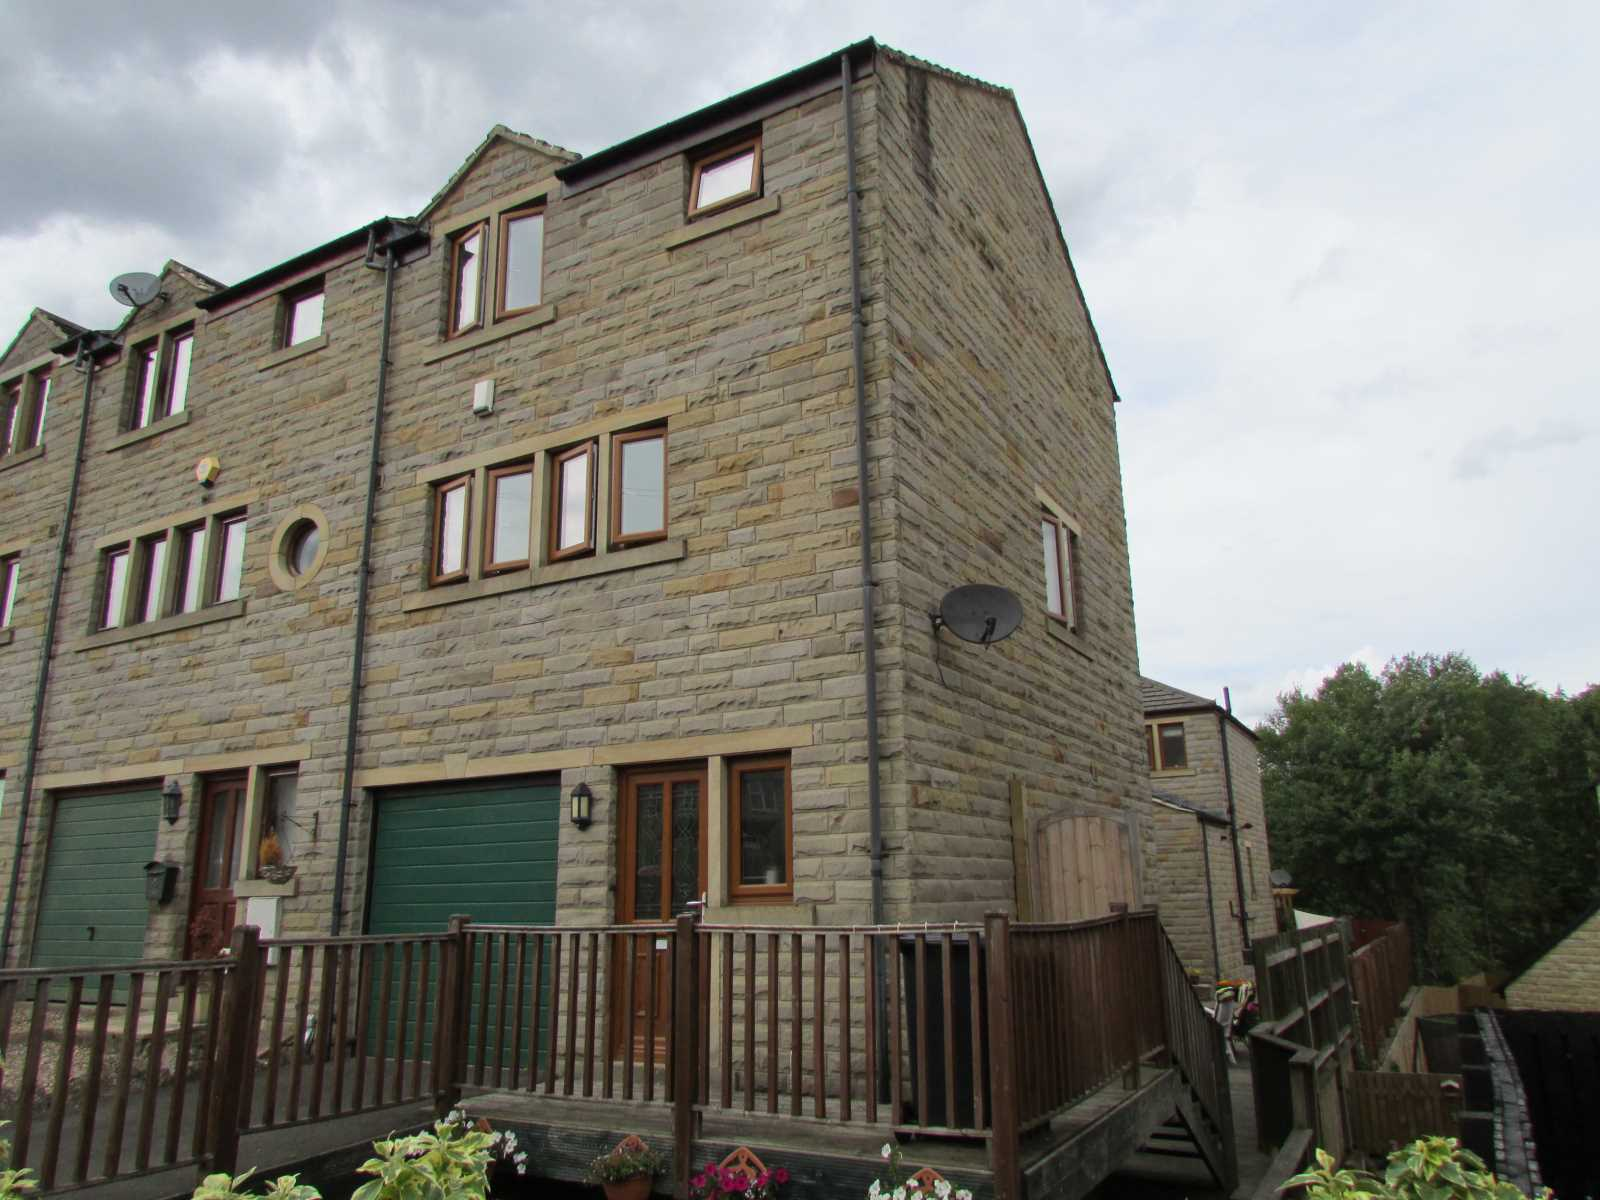 78 Mill Moor Road Meltham, Holmfirth, HD9 5LW